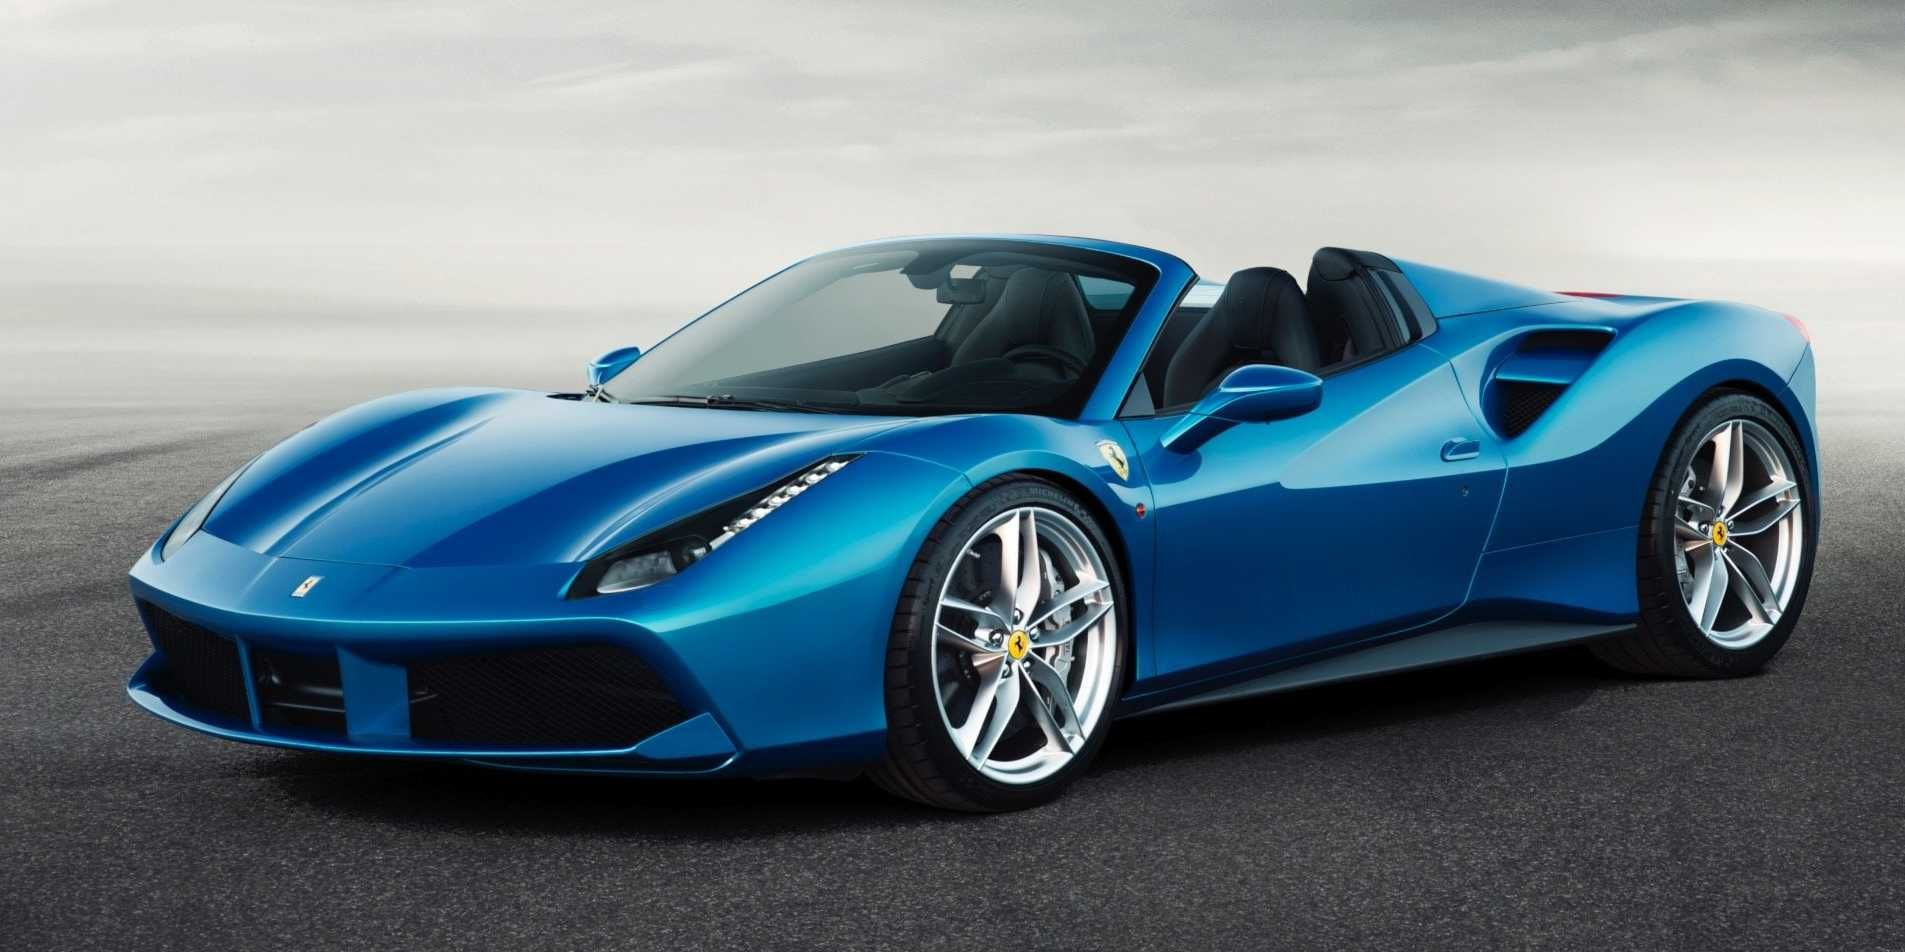 Ferrari just dropped the top on its newest supercar. via Business Insider